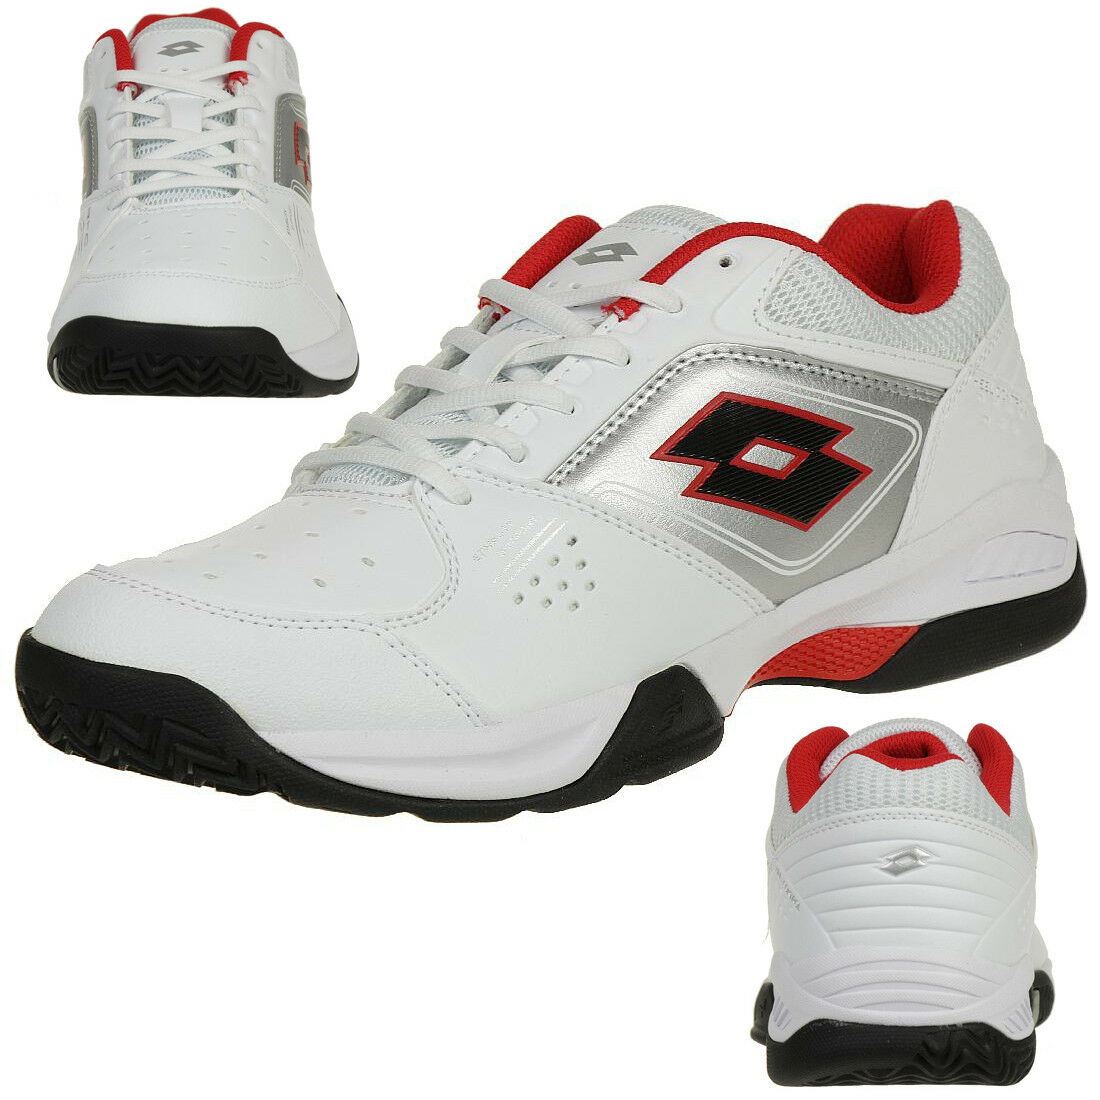 Lotto T-Tour 600 XI Herren Multicourtschuh Tennis Tennis Tennis weiss T6404 76b317